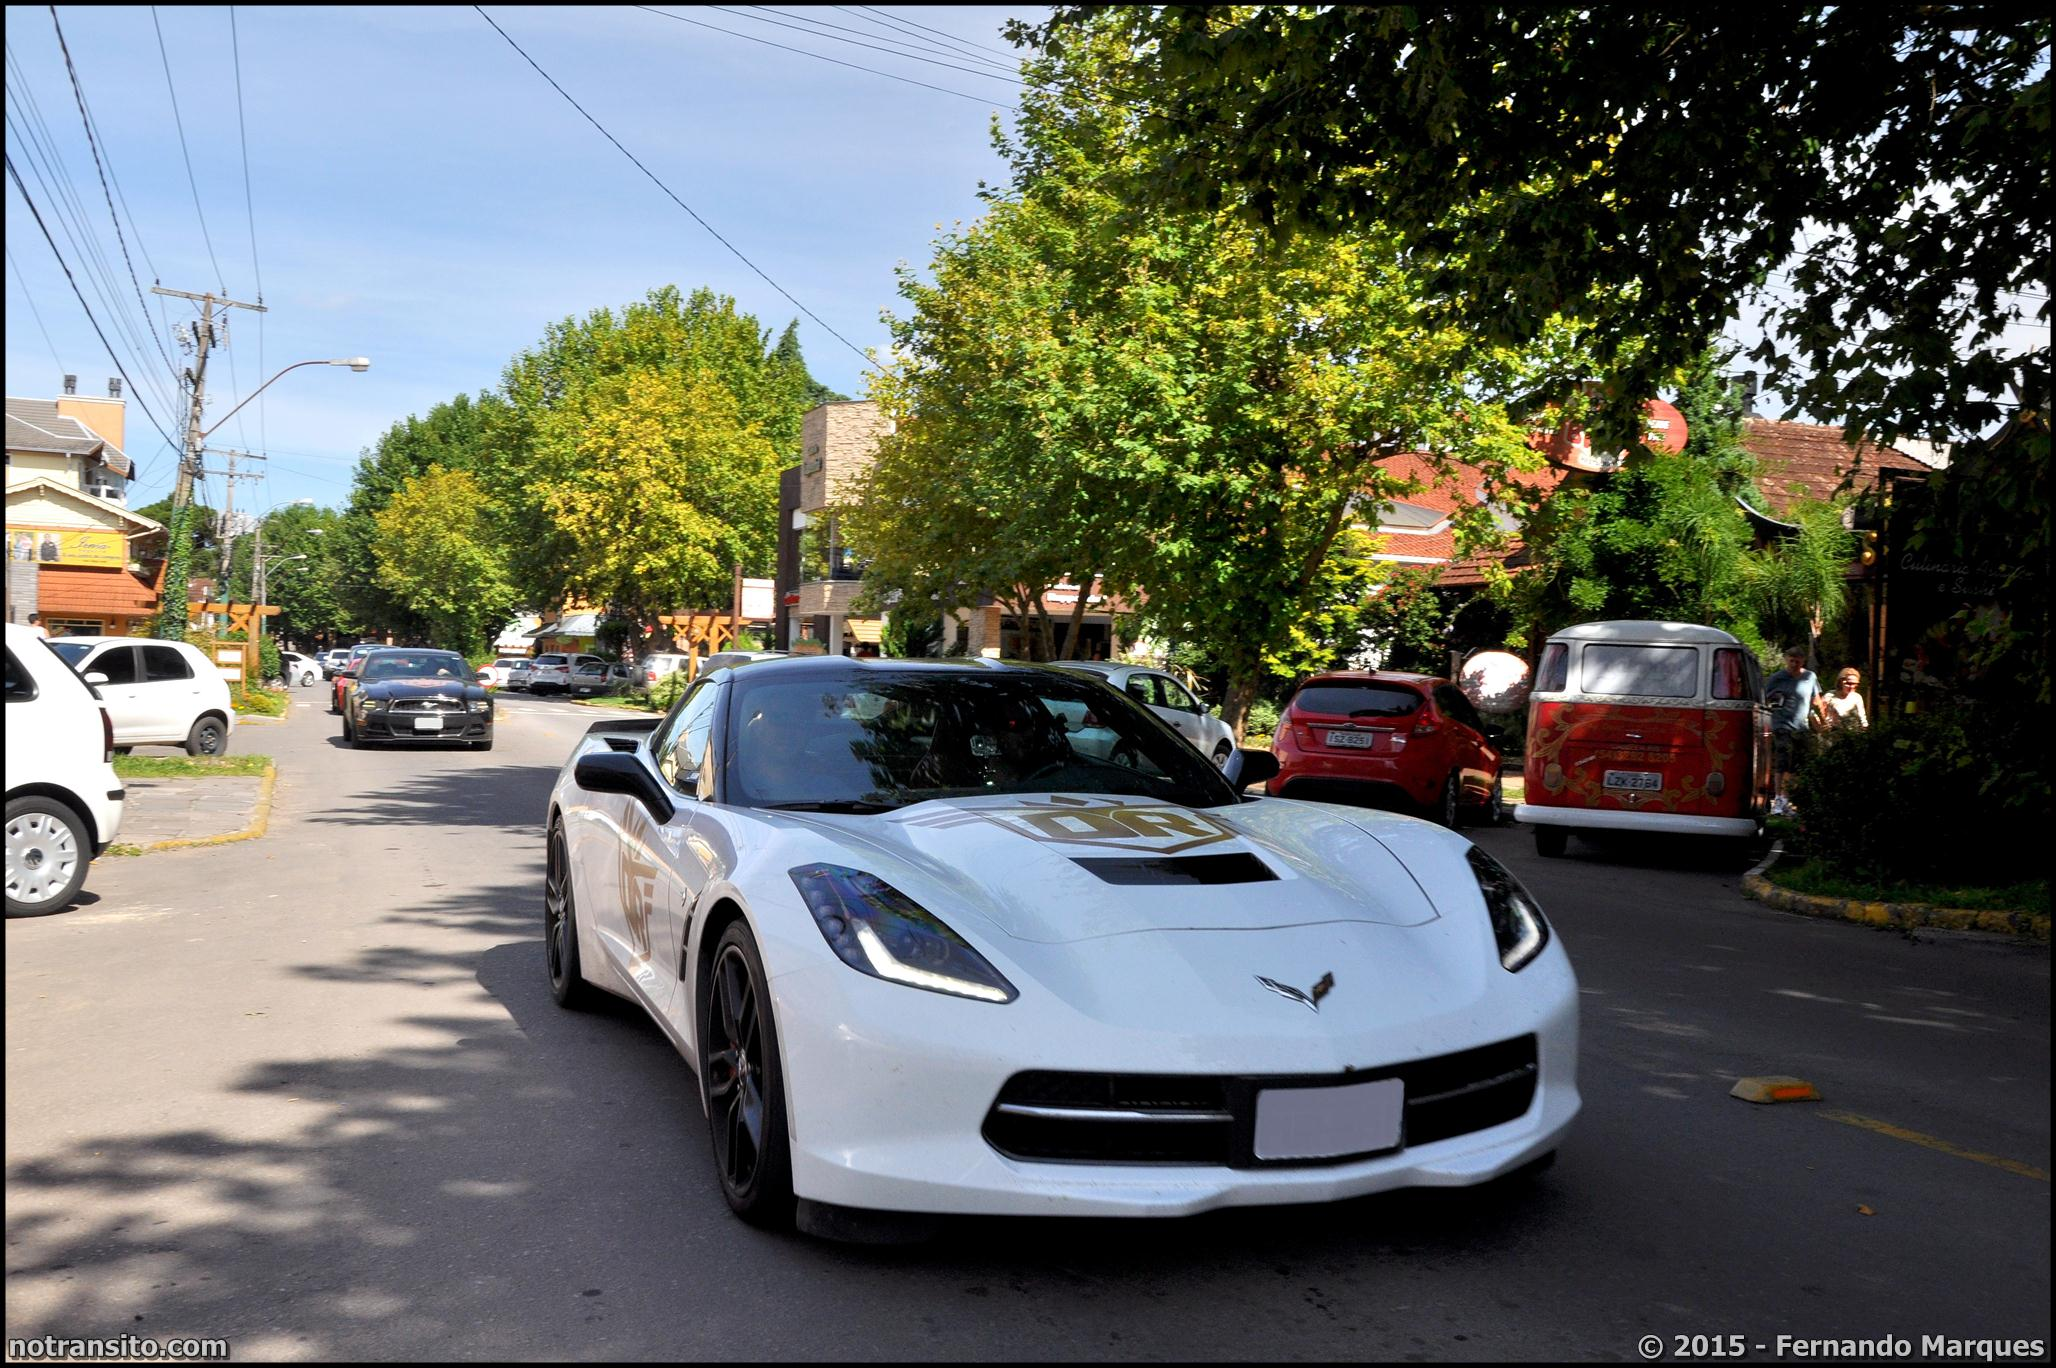 Dream Route, Chevrolet Corvette C7 Stingray